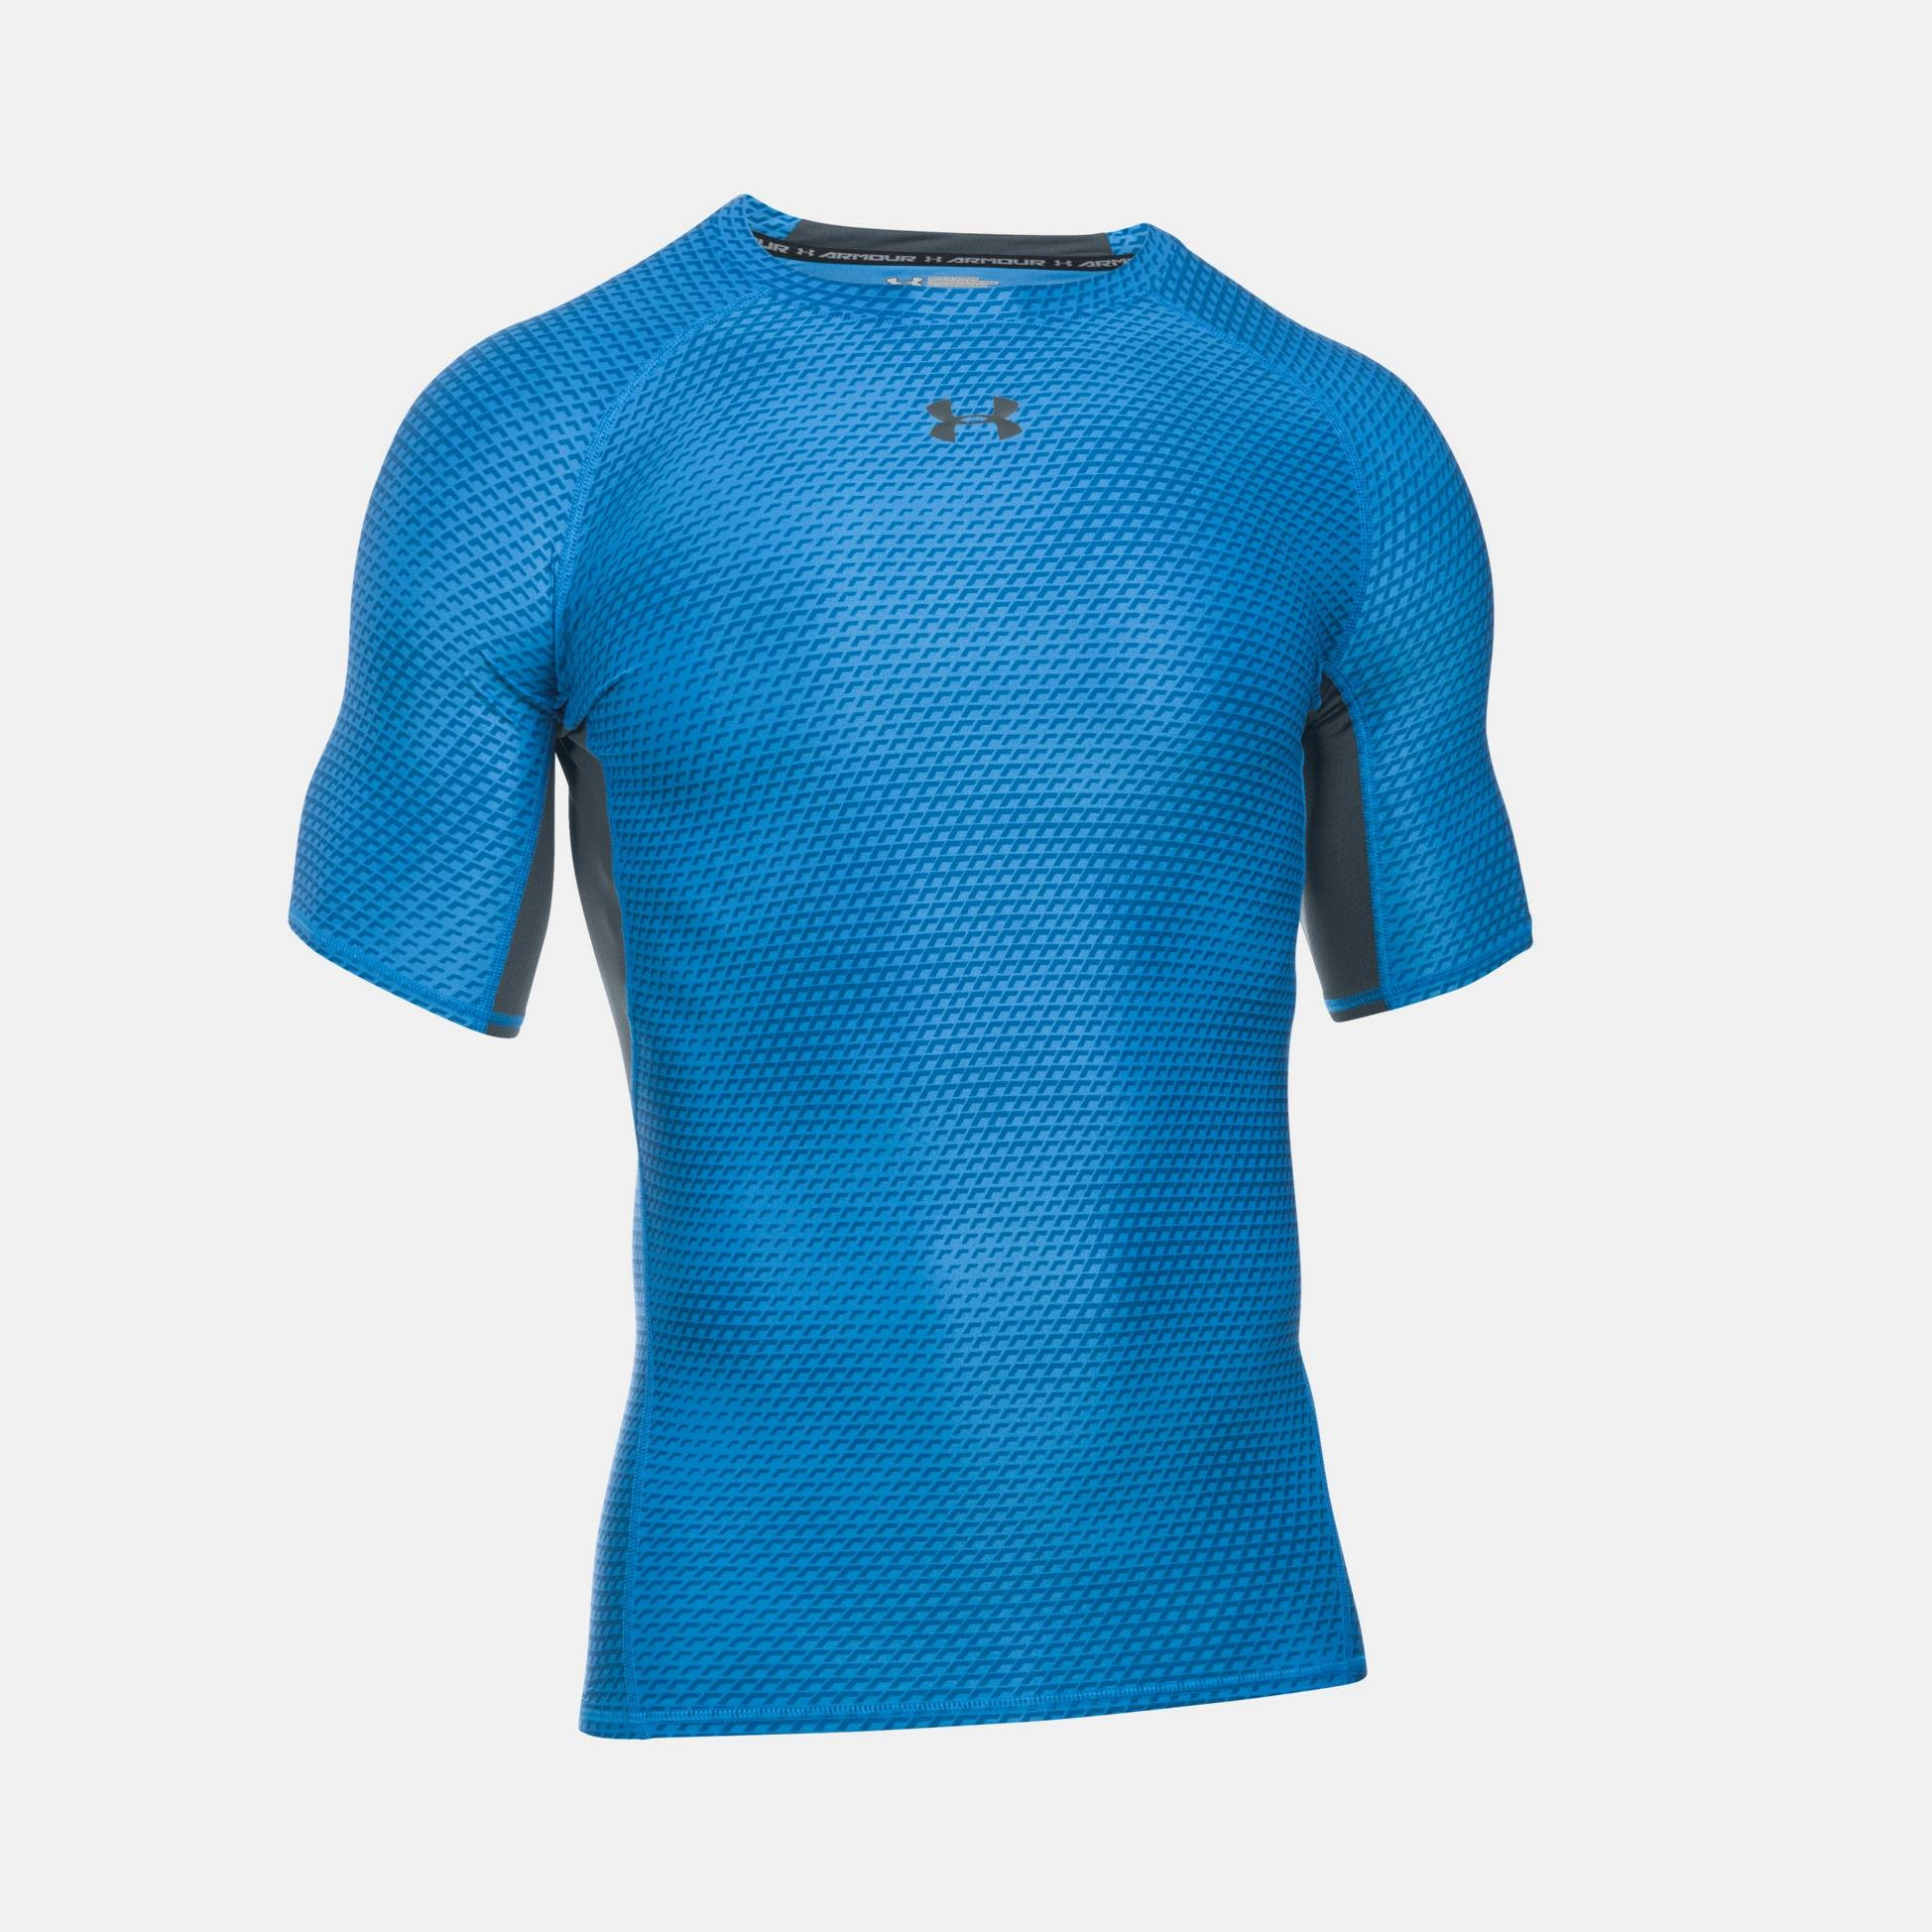 Clothing under armour armour printed comp shirt fitness for Printed under armour shirts